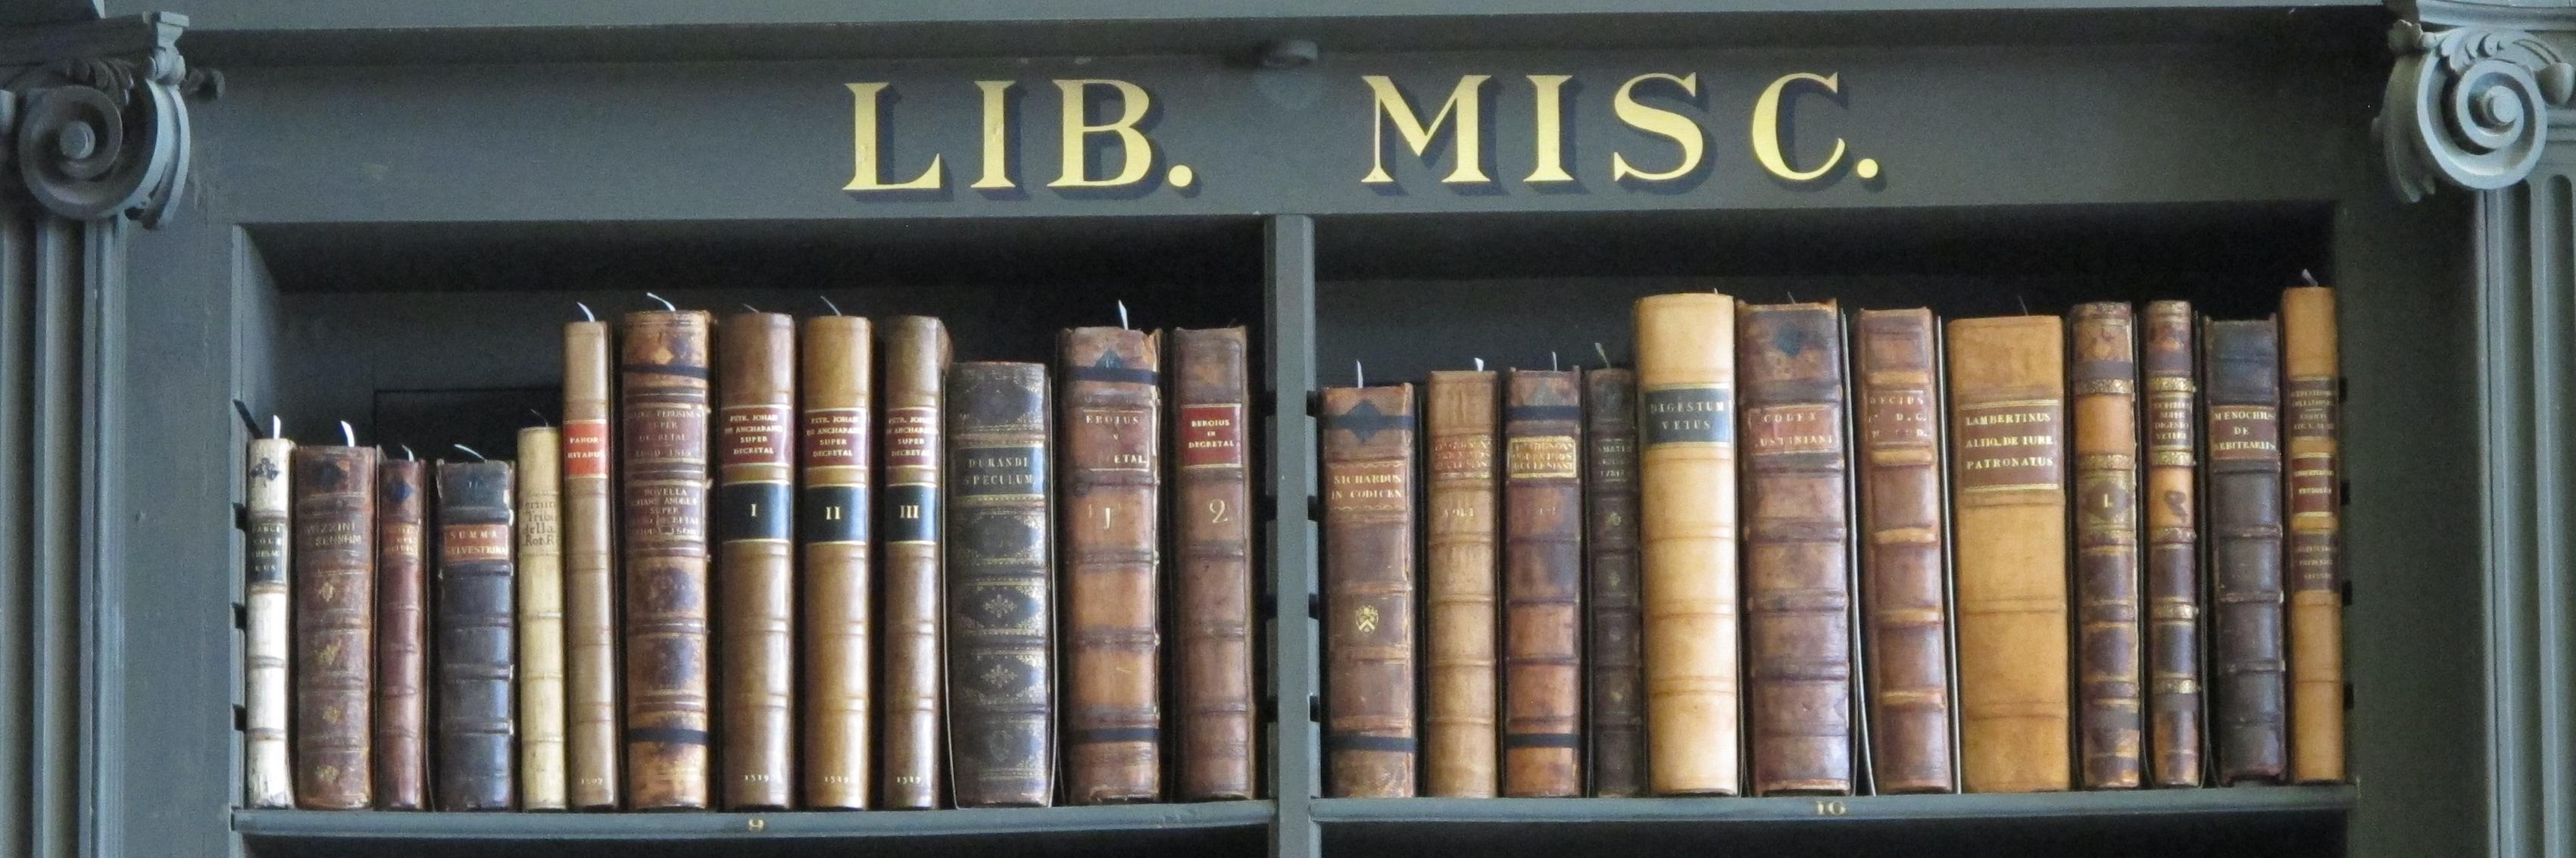 Shelf of books; with label 'Lib. Misc' above